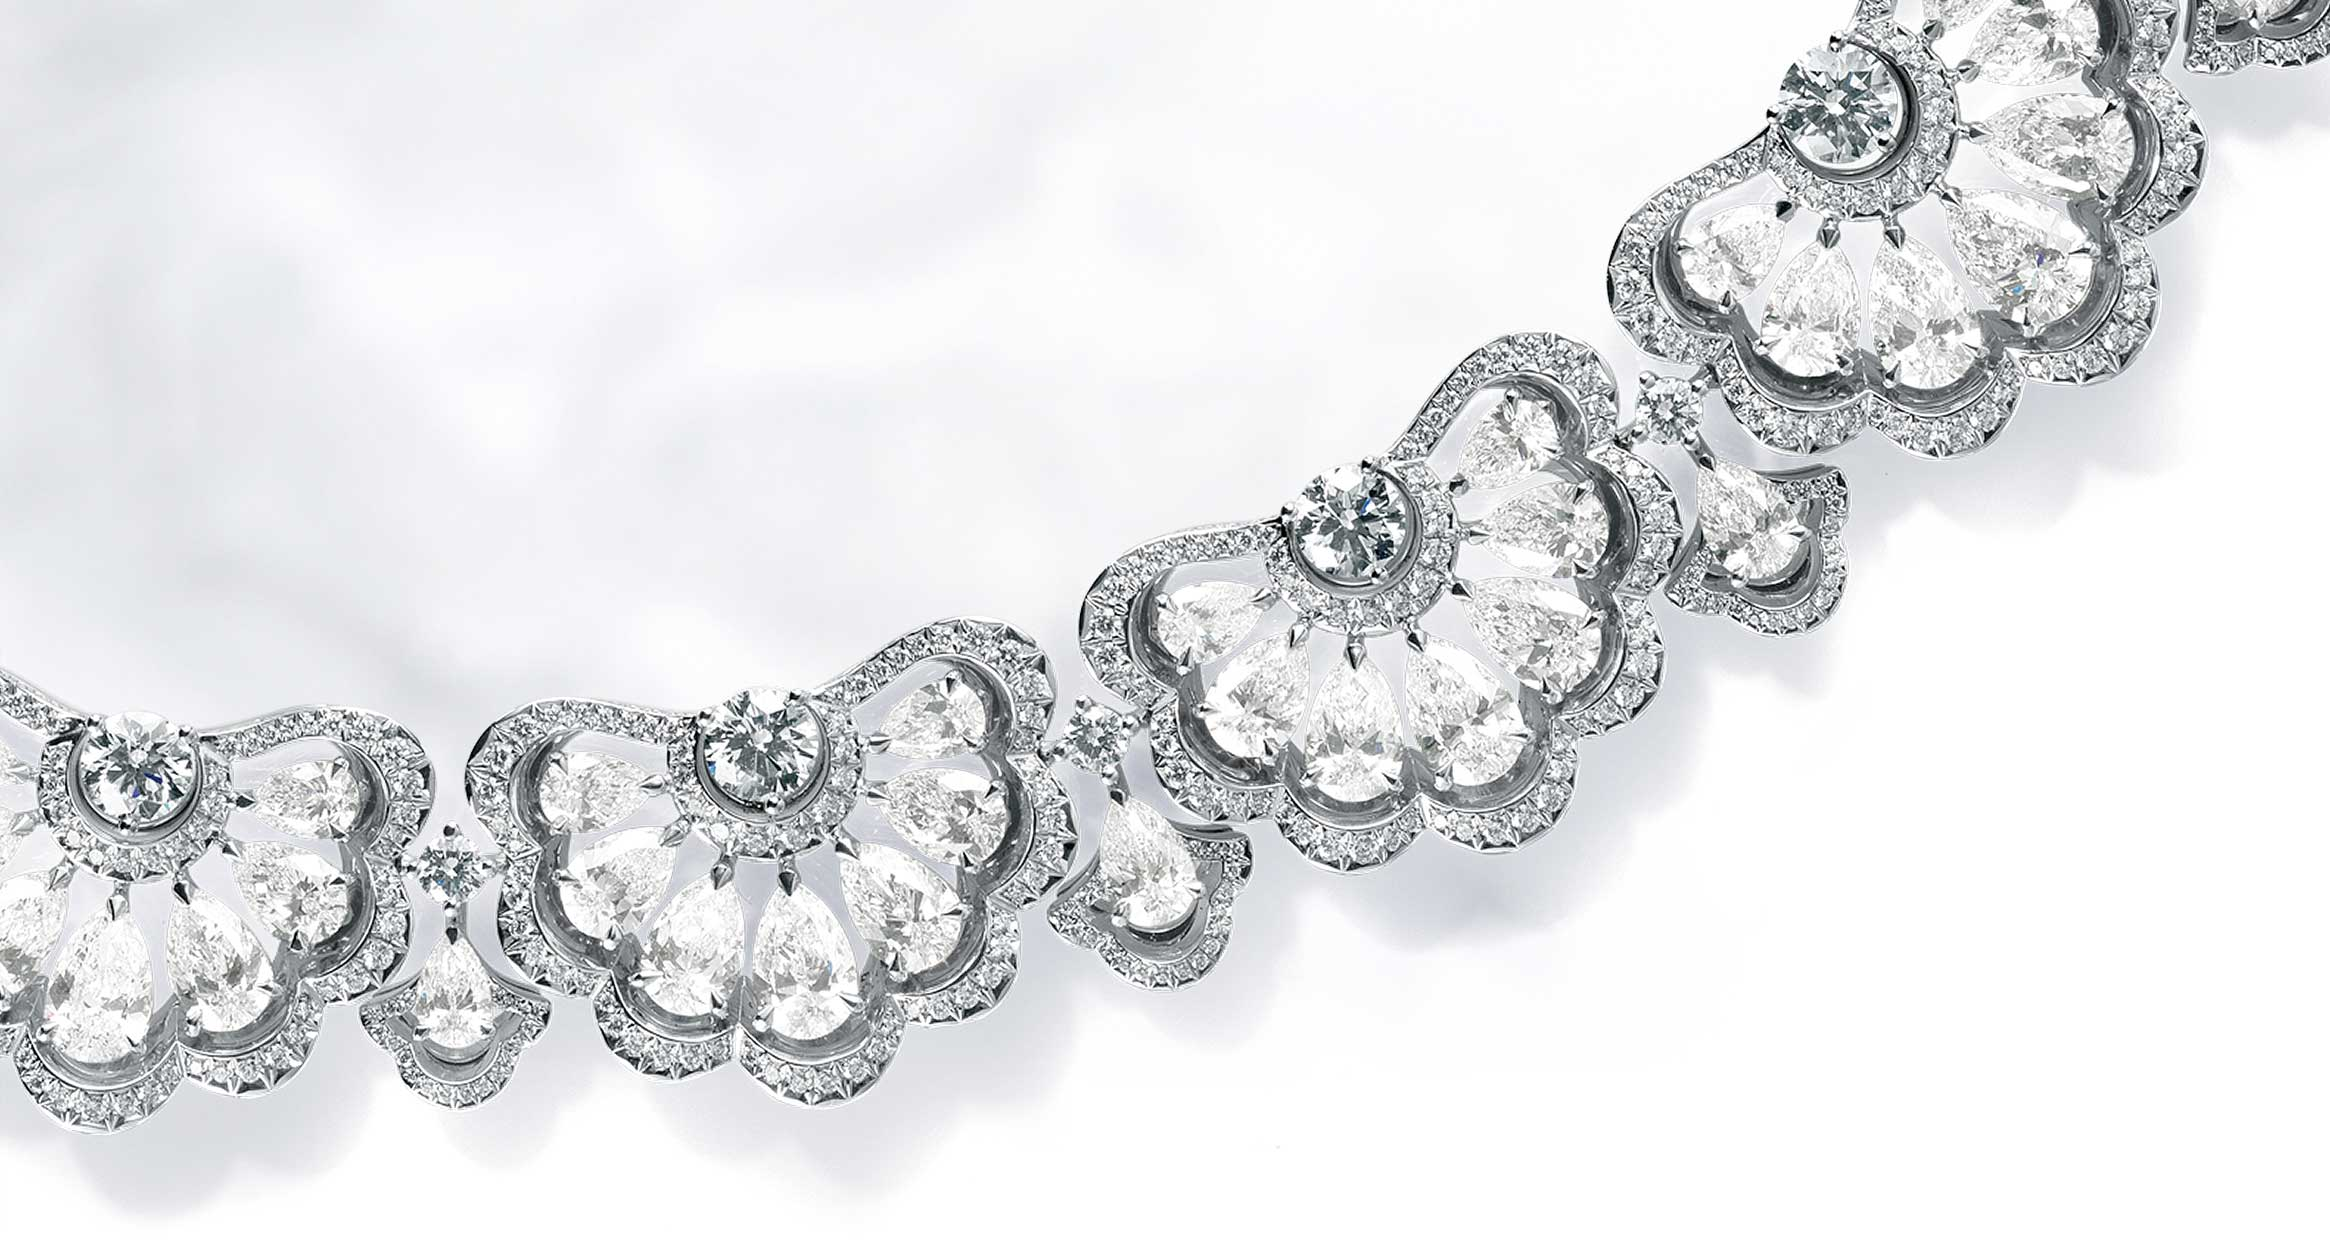 A close up of the diamond silver precious lace collection by Chopard